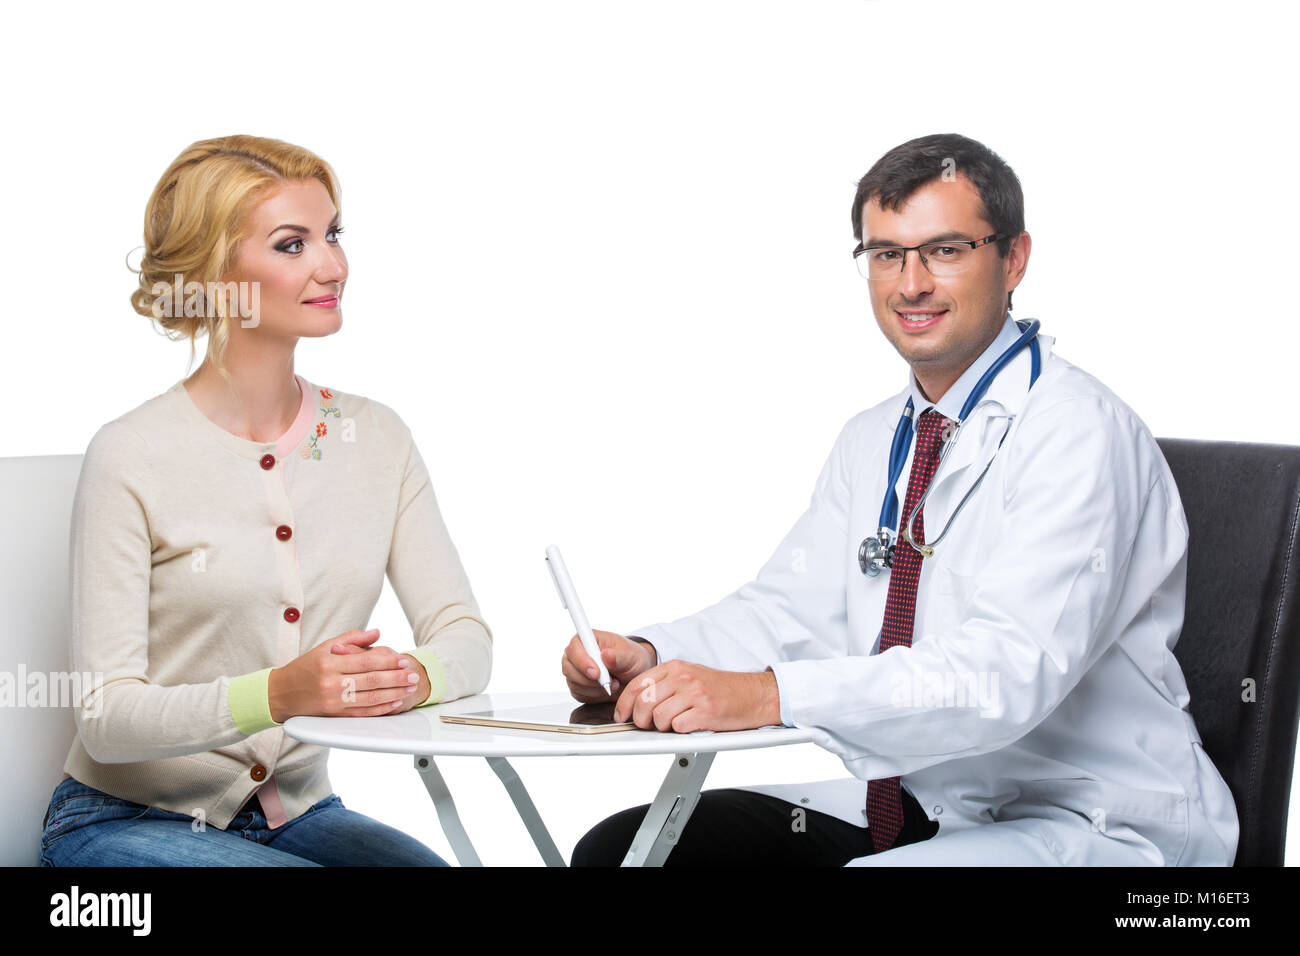 woman at doctor appointment Stock Photo